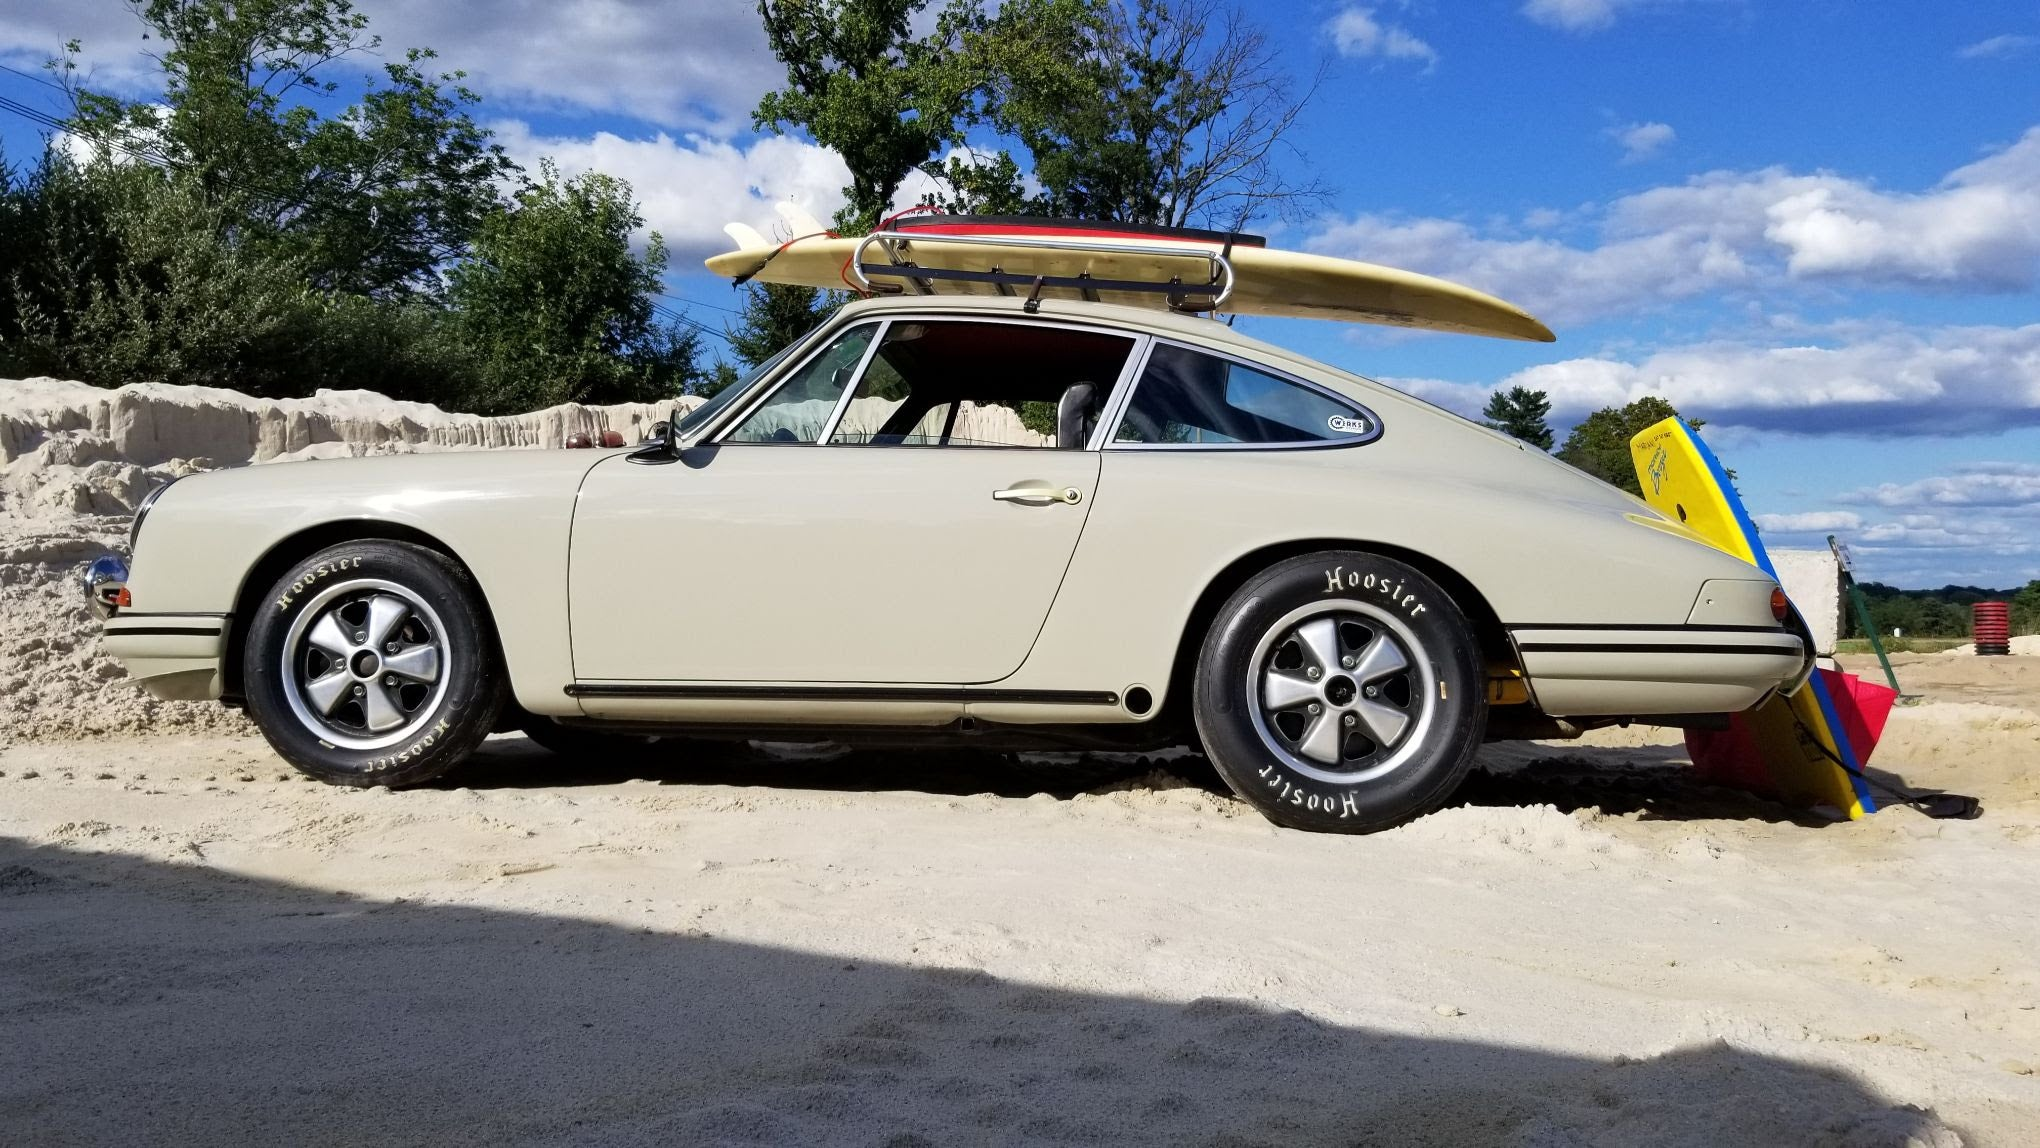 Porsche 911 with the rare California Surf Option.